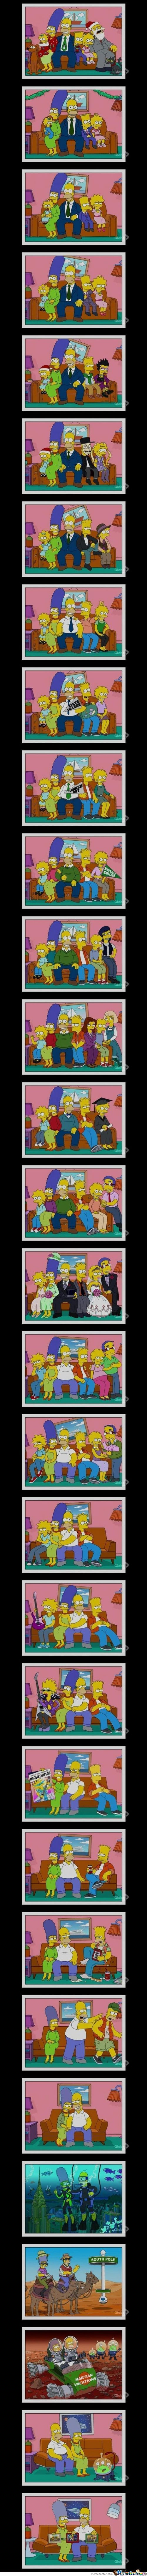 Awesome Simpson Future